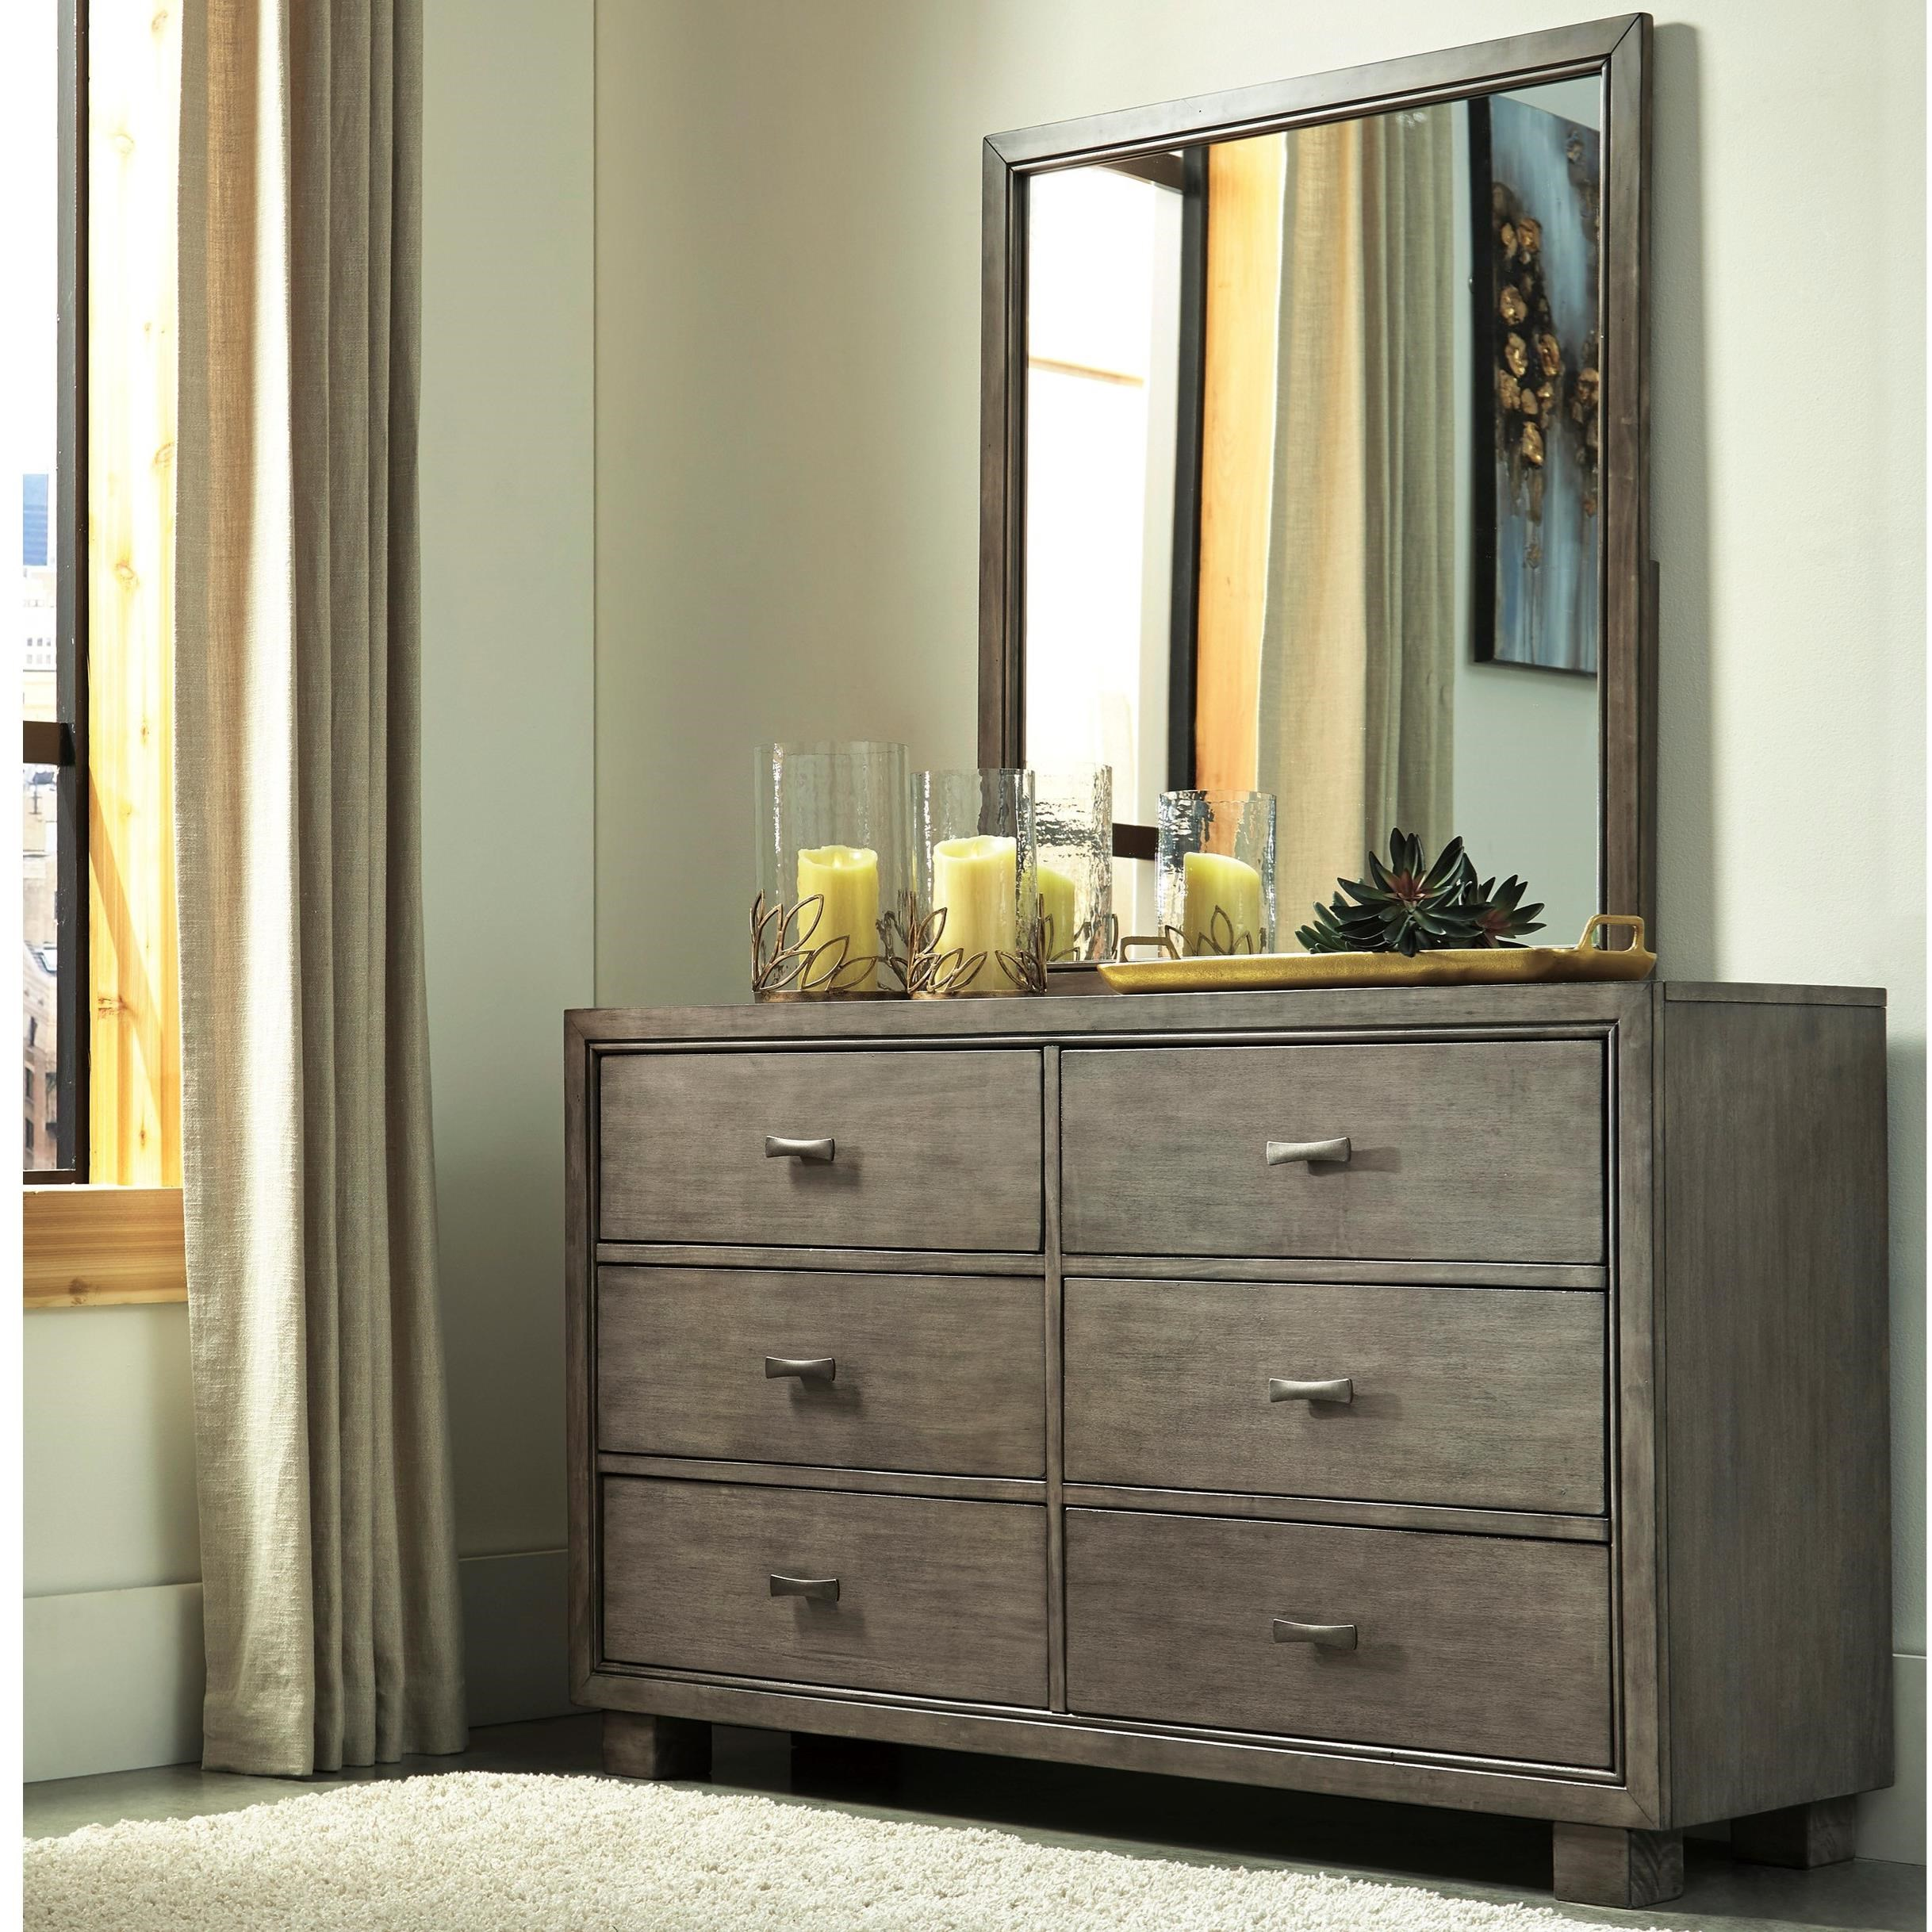 Arnett Dresser and Mirror Set by Signature Design by Ashley at Northeast Factory Direct